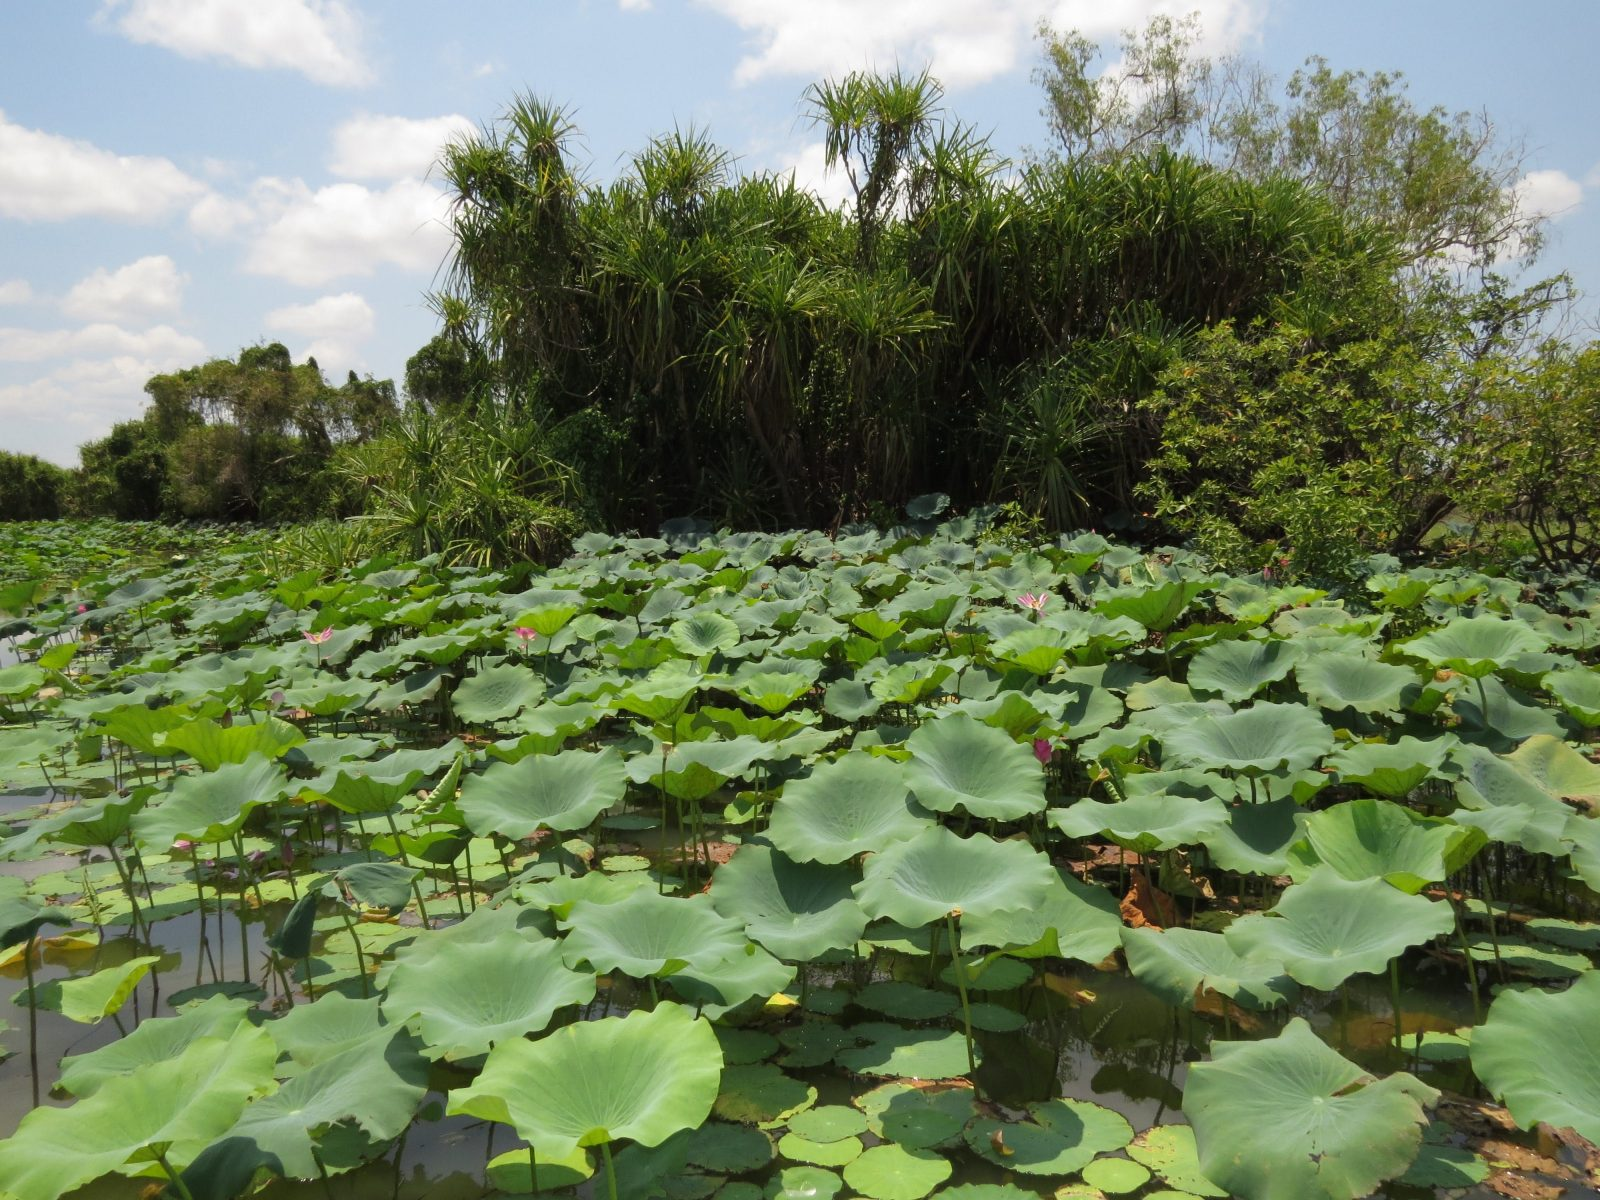 Water lilies on the Mary River